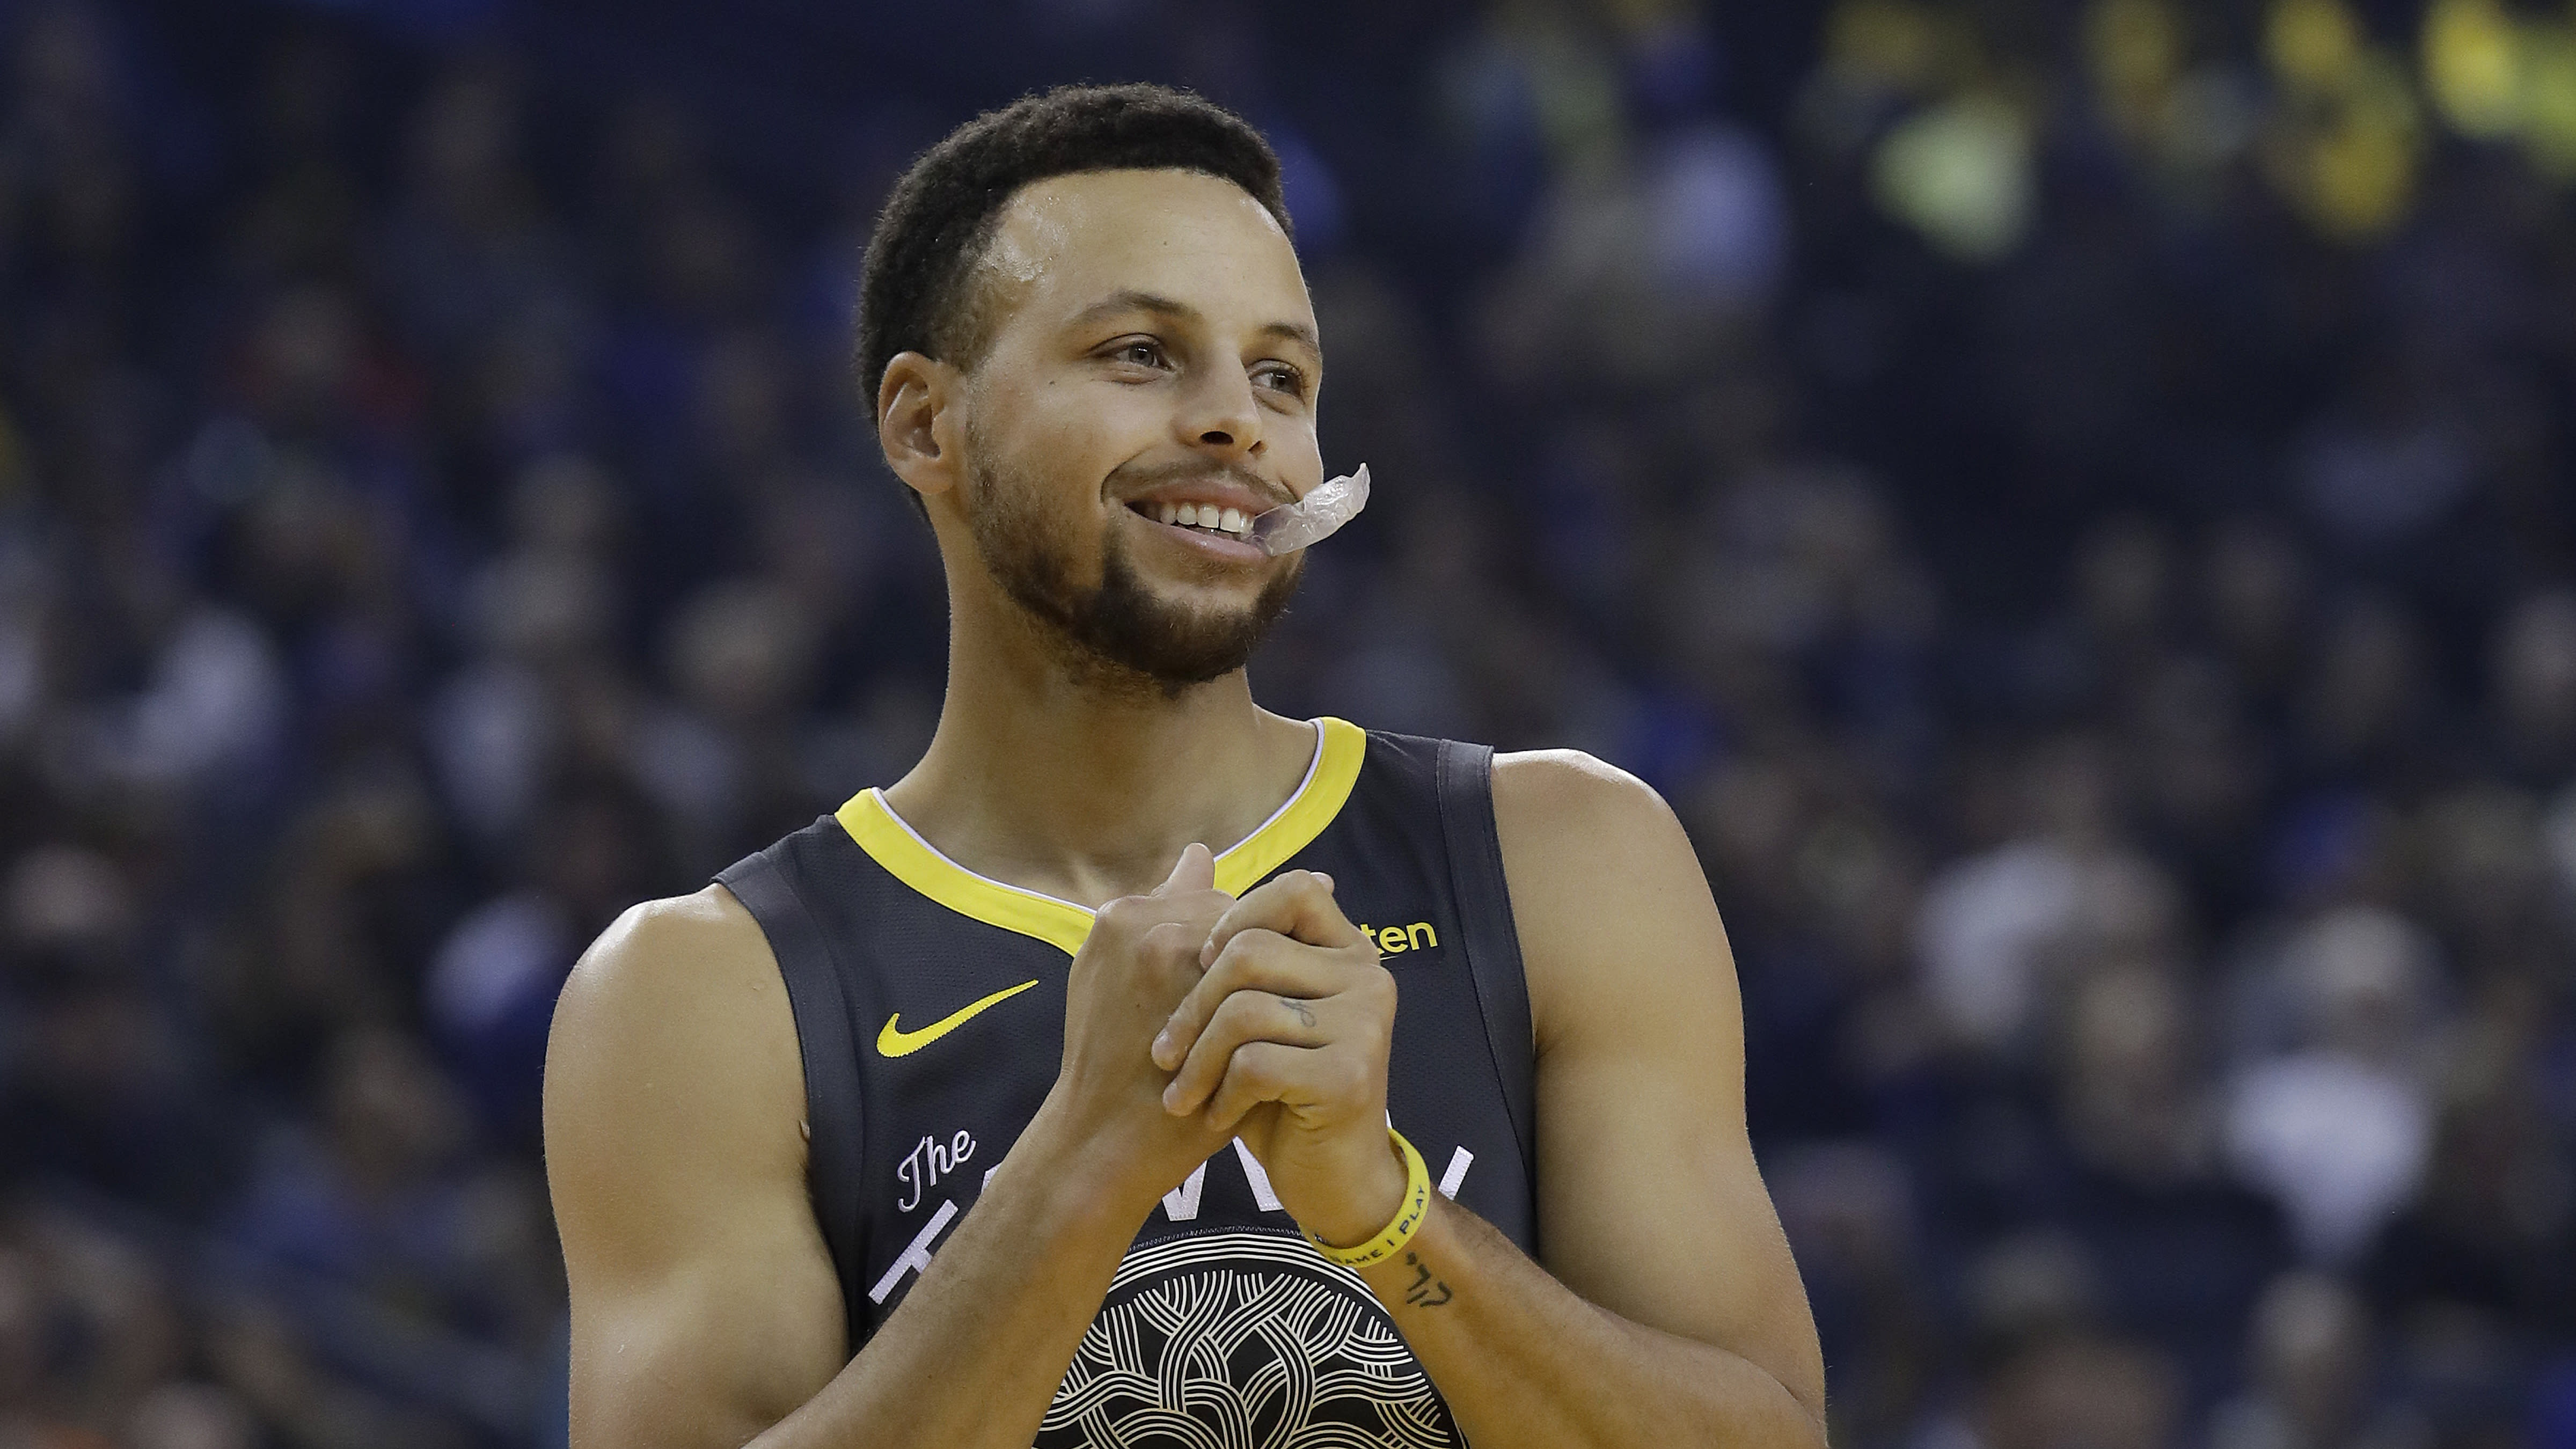 90a8a74656f7 Steph Curry came through for a 9-year-old fan who asked why his sneakers  aren t made for girls